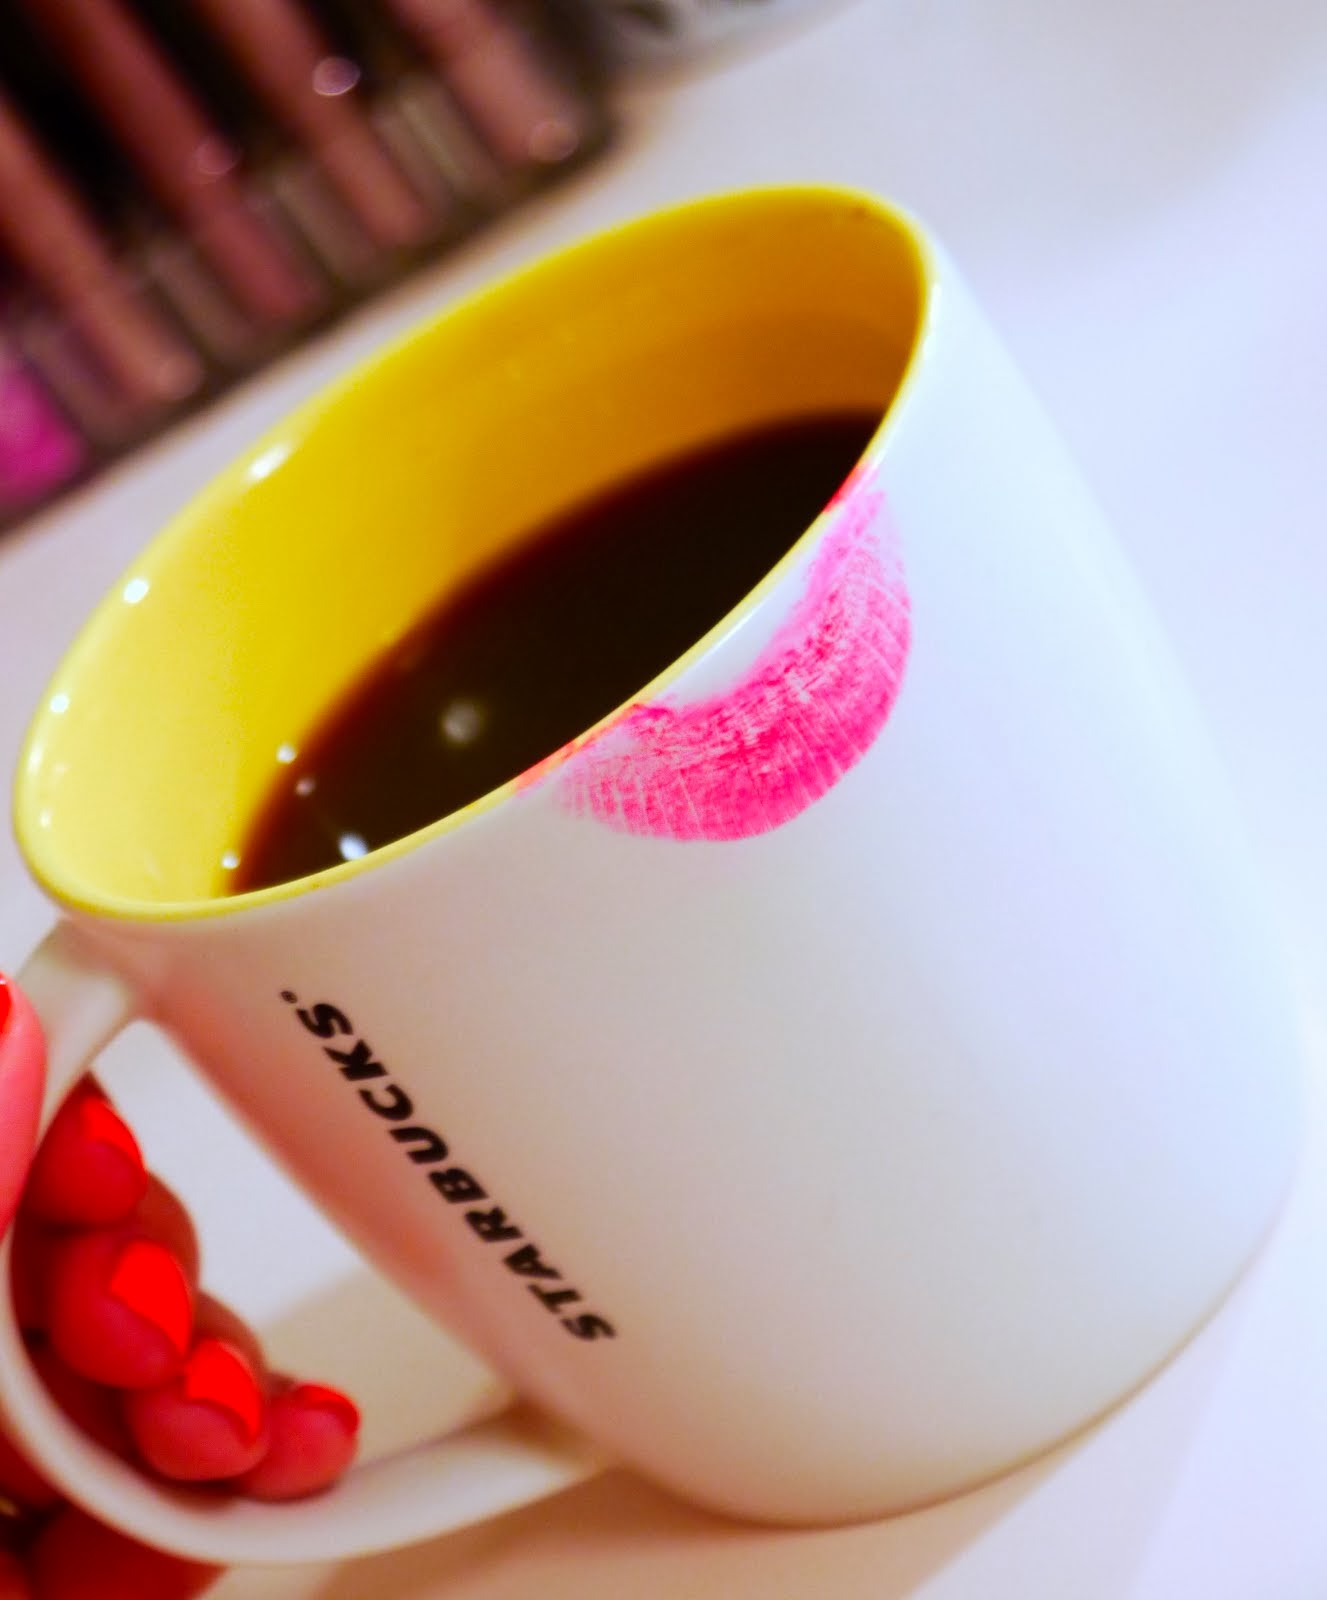 Lipstick and Starbucks